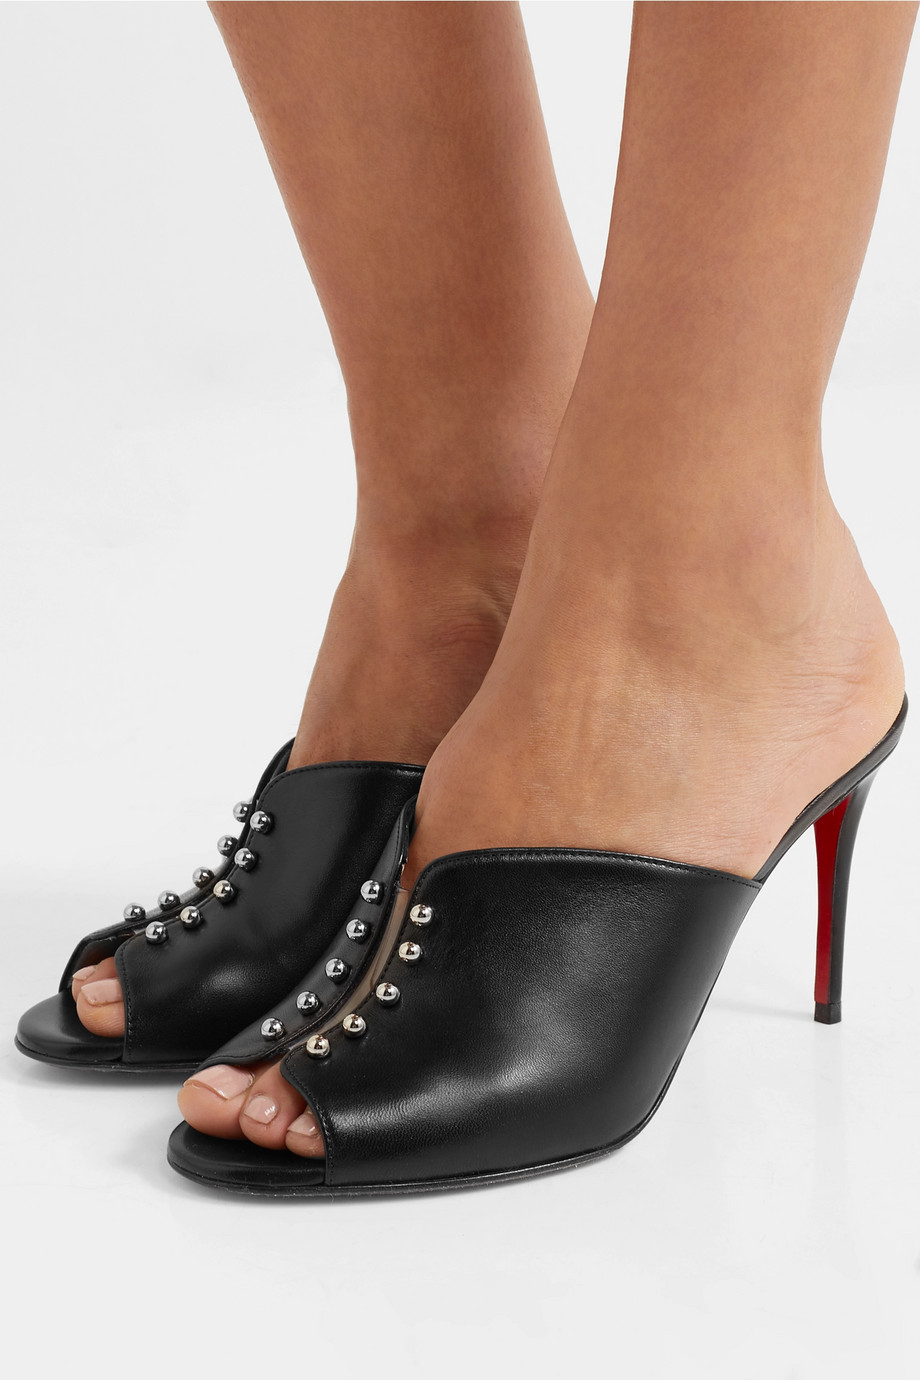 Christian Louboutin Predumule 85 studded leather mules